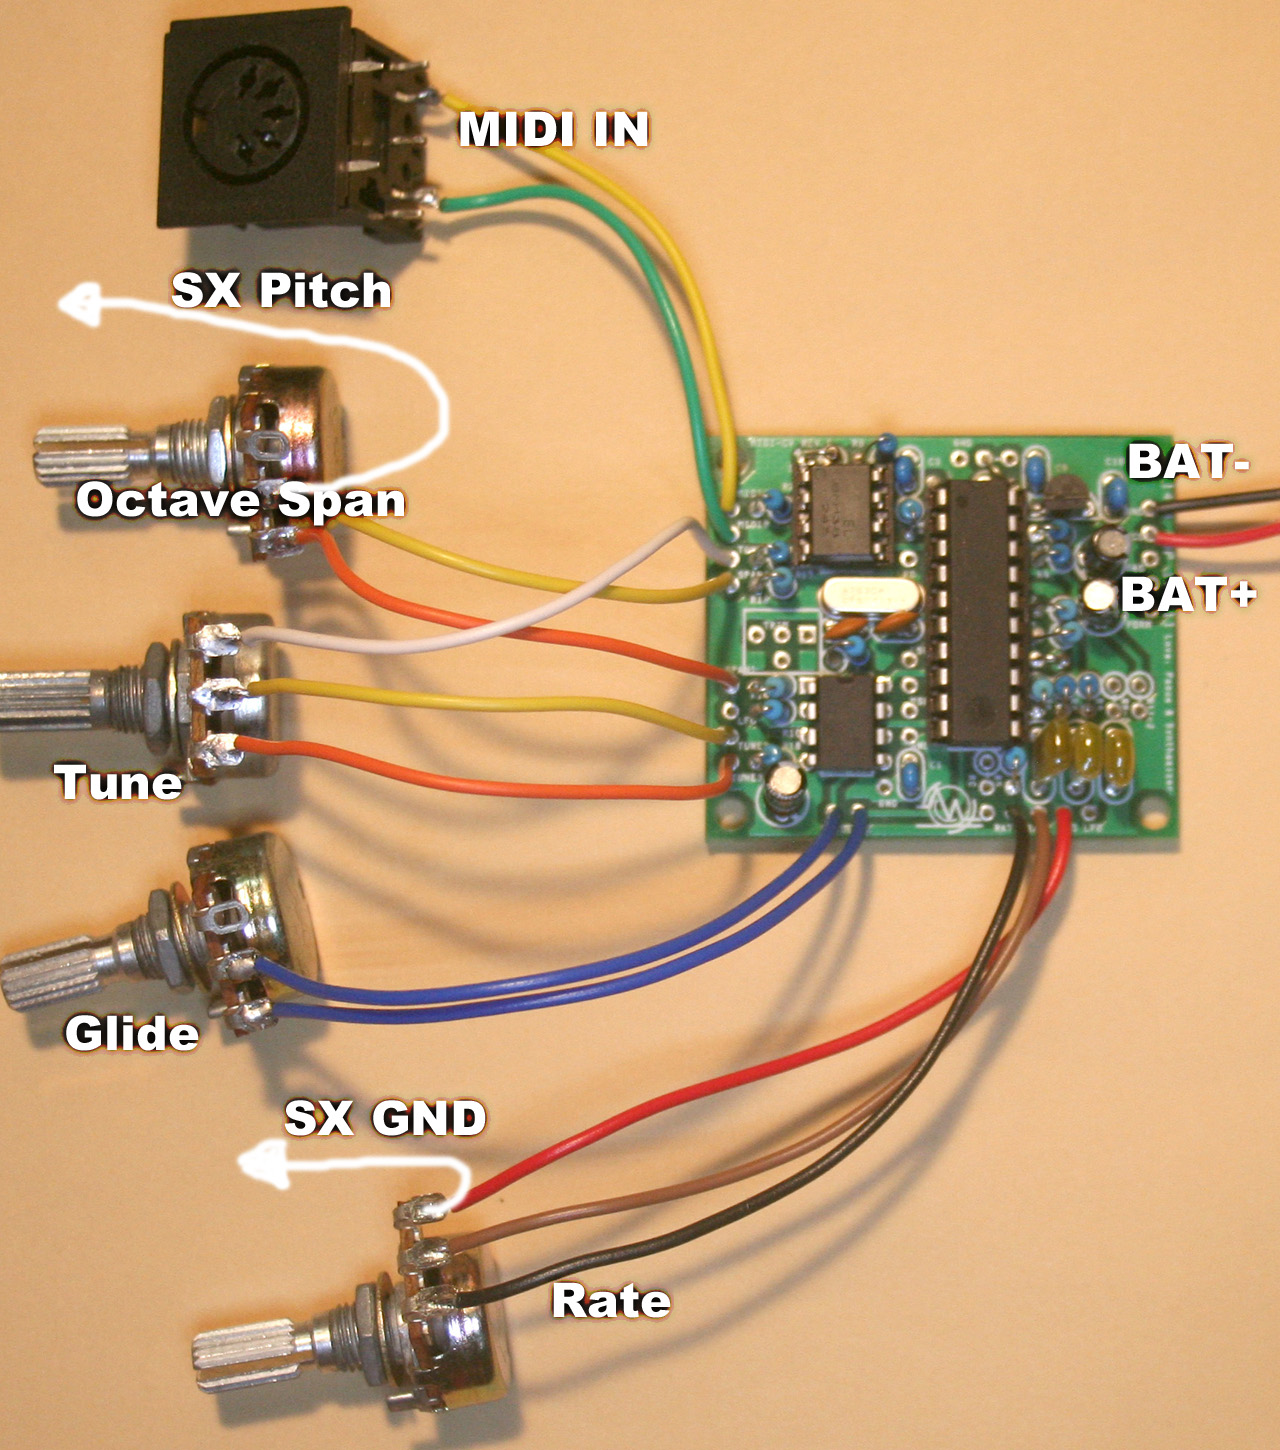 Midi If For Sx 150 Kit V2 Cable Wiring Configuration